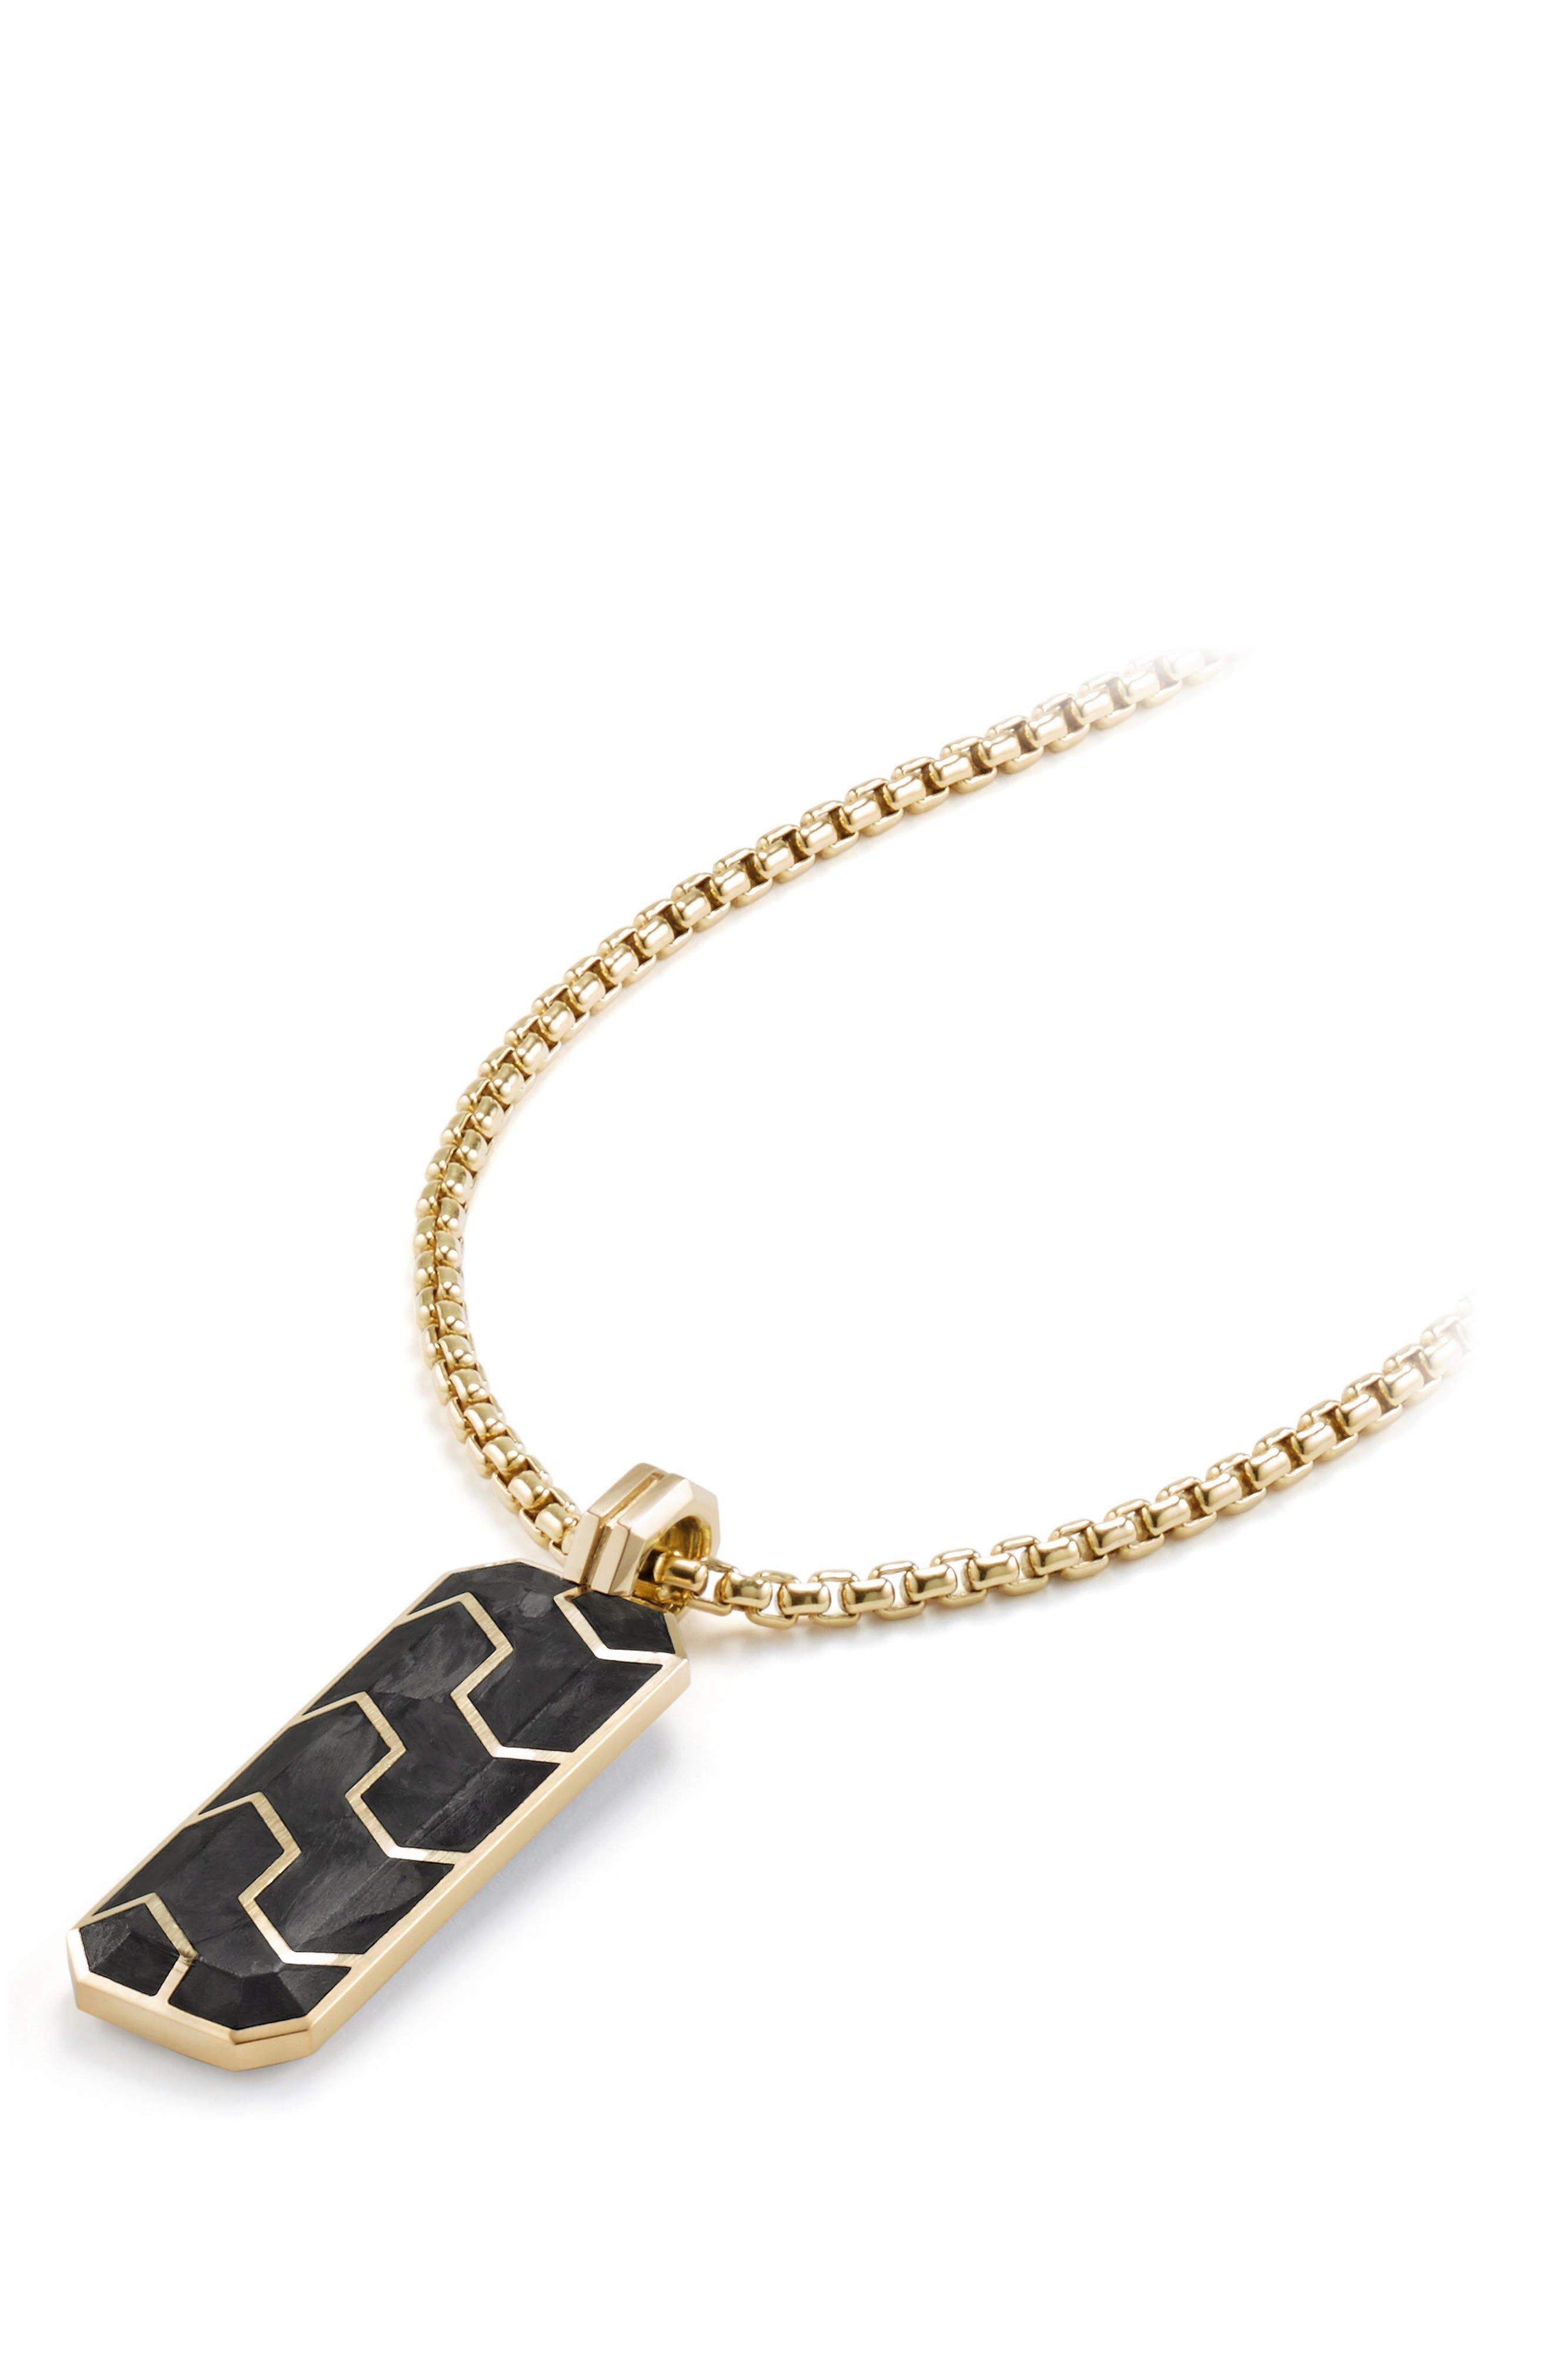 Davdi Yurman Forged Carbon Ingot Tag with 18K Gold,                             Alternate thumbnail 2, color,                             020